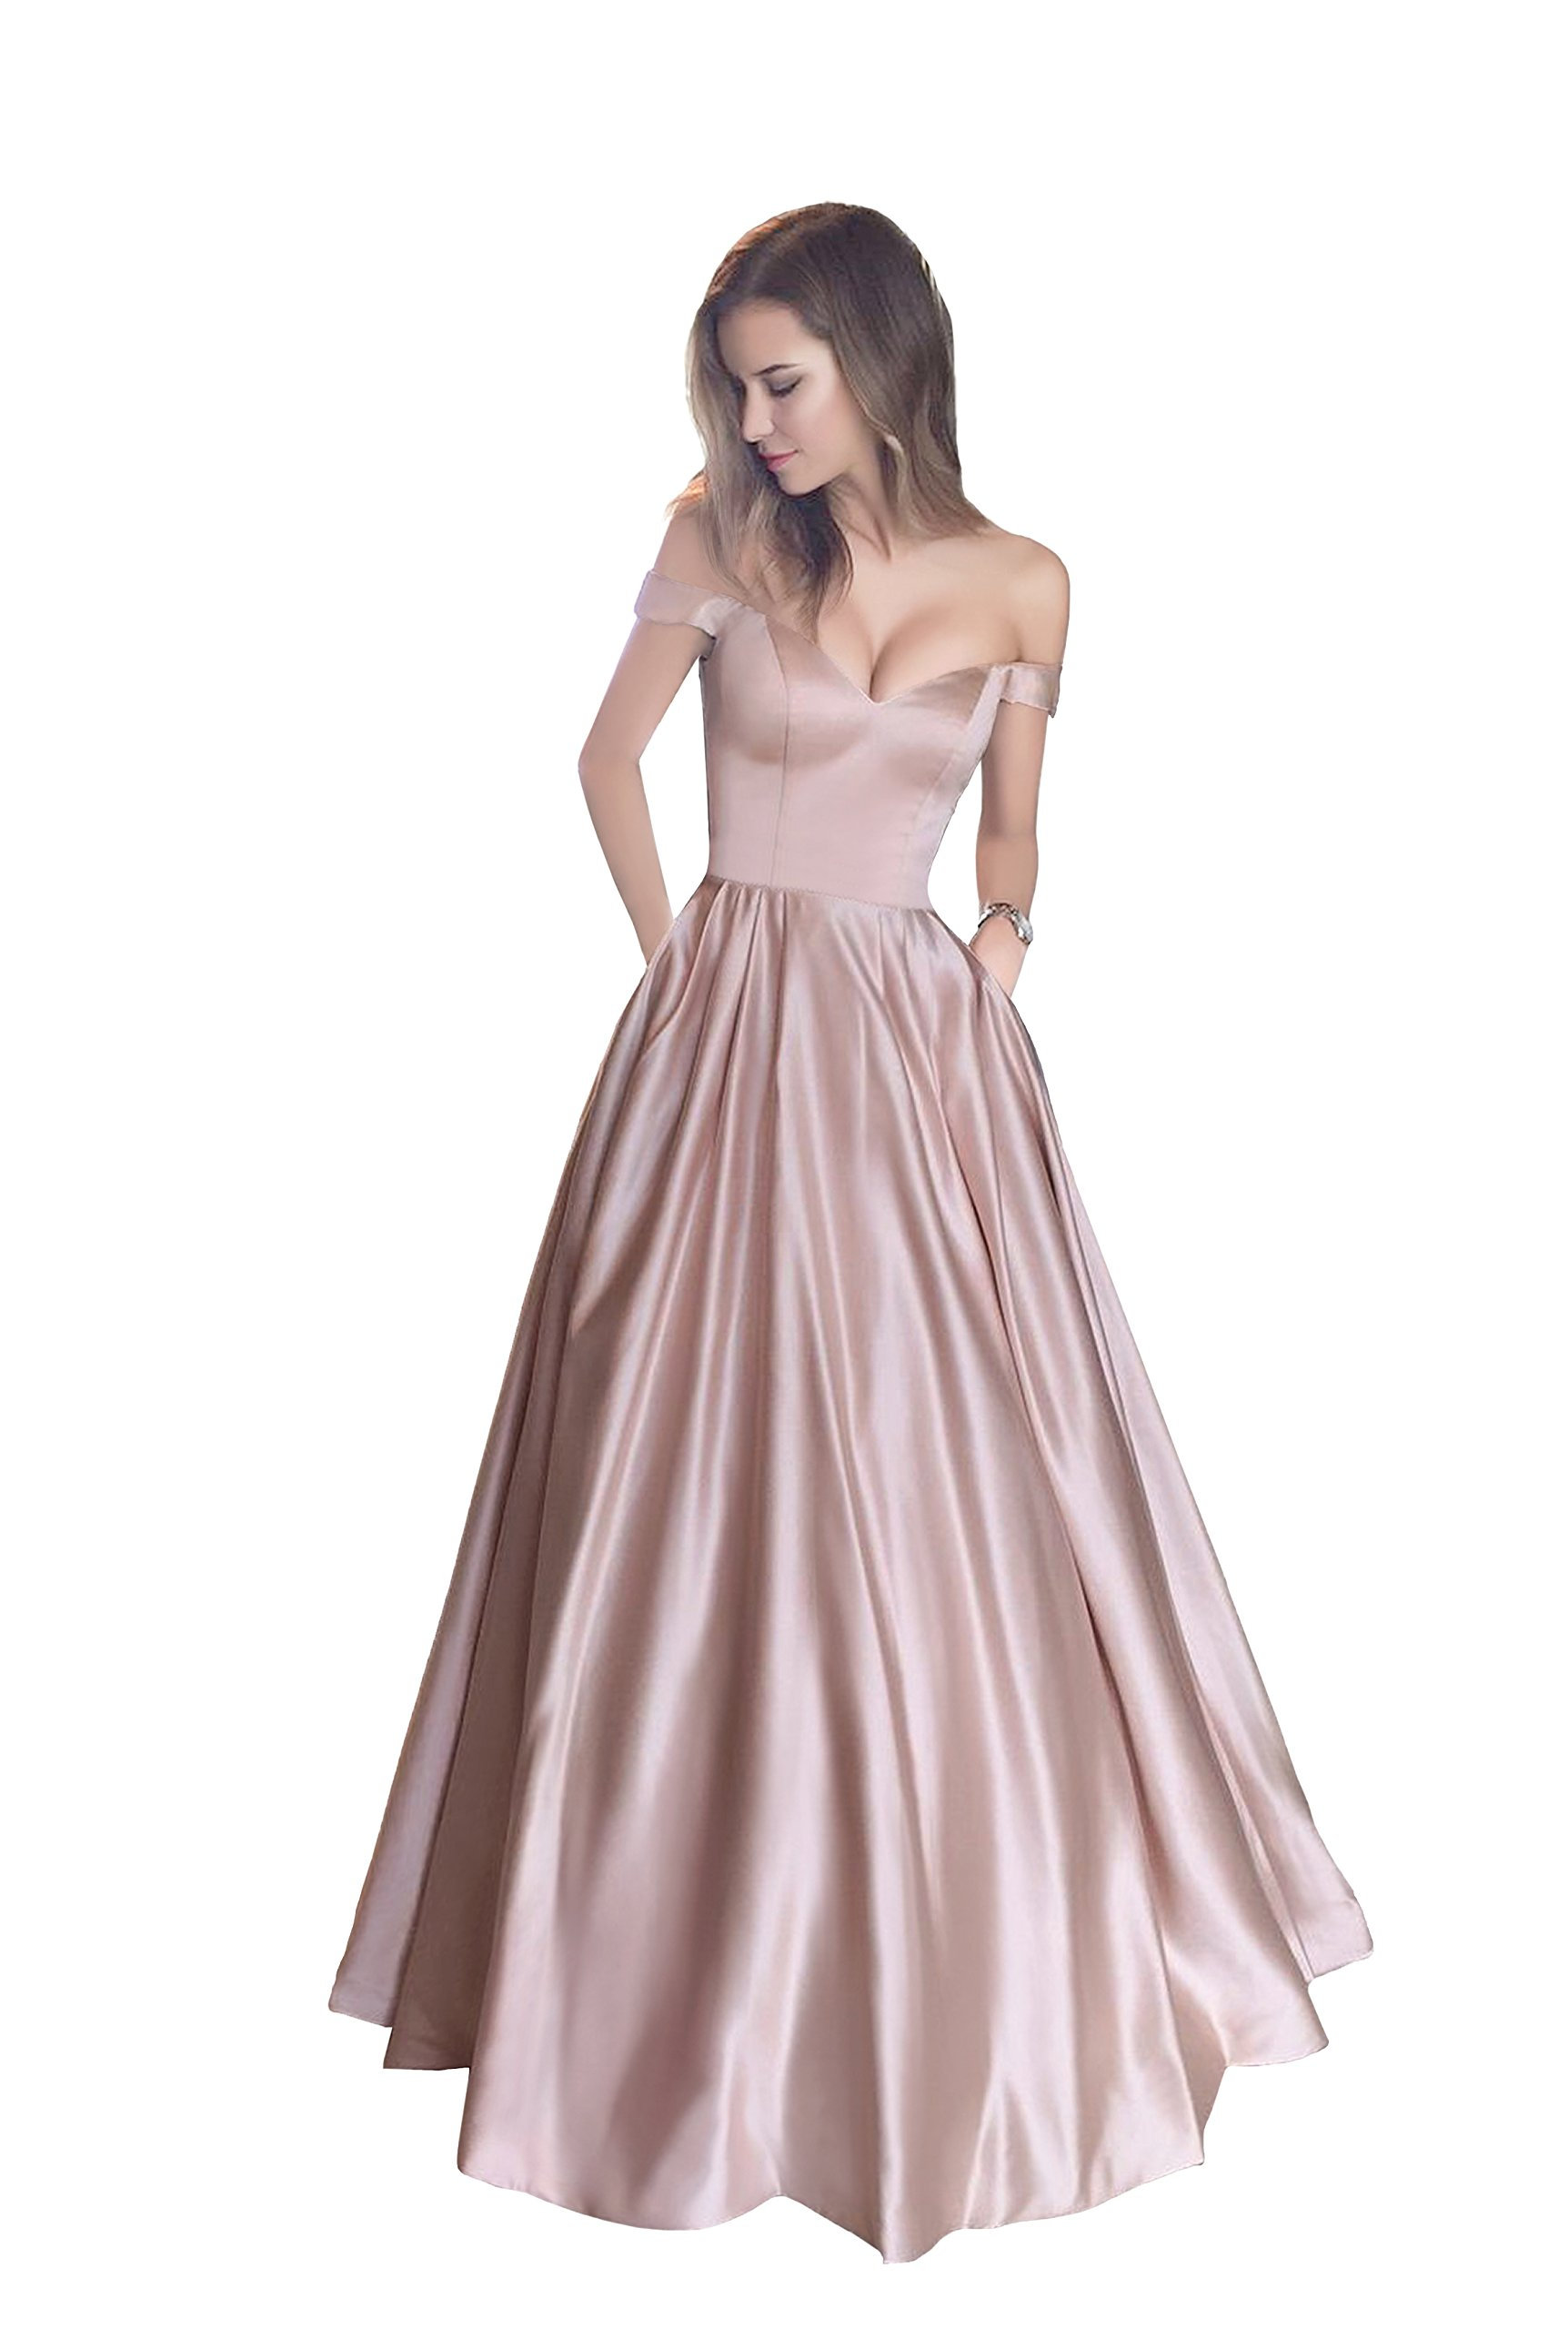 Harsuccting Off The Shoulder Beaded Satin Evening Prom Dress with Pocket Corset Without Belt Blush Pink 16